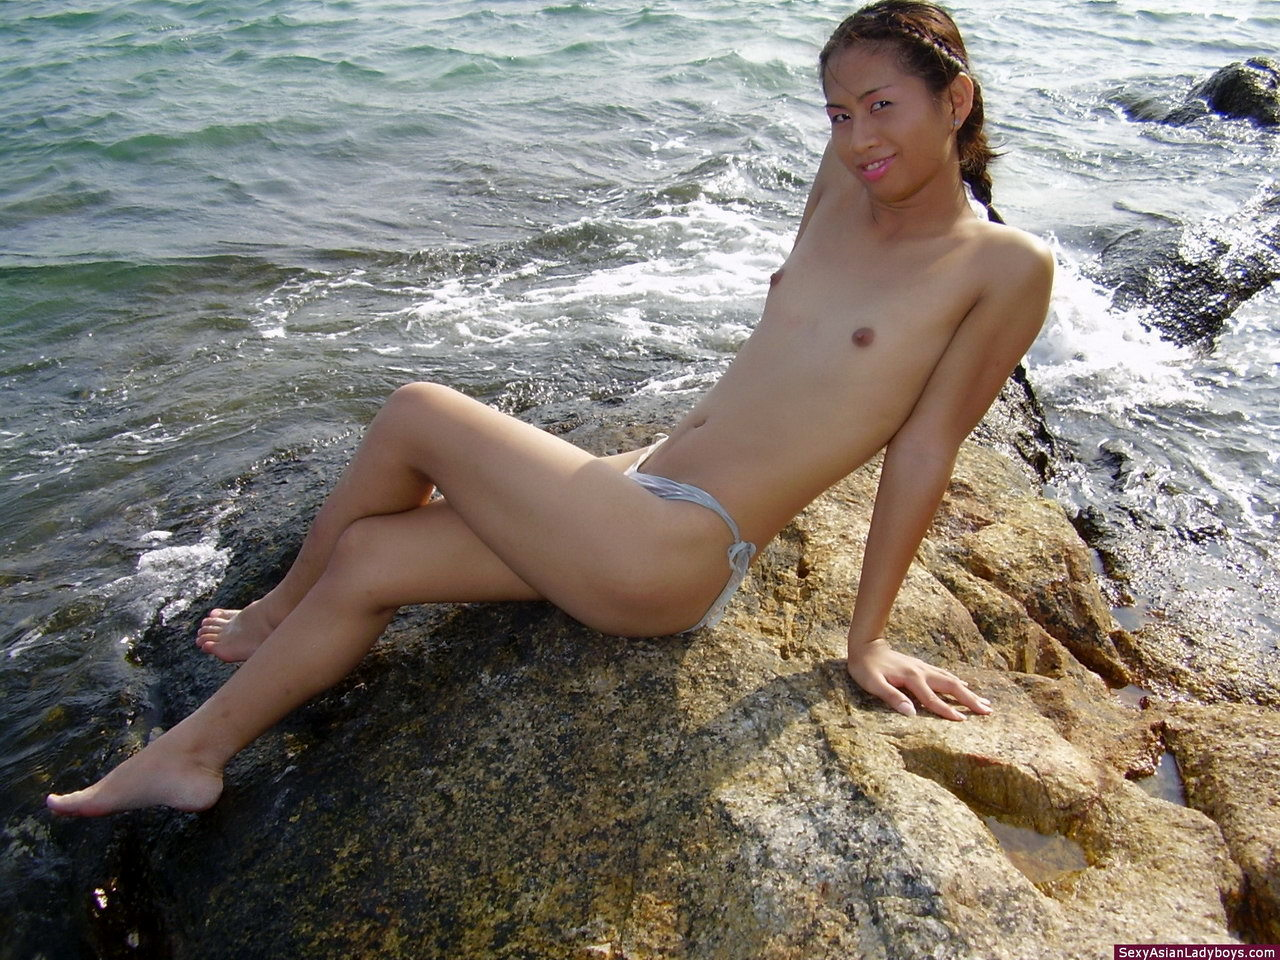 Tiny Tranny Showing Her Charms On A Tropical Beach